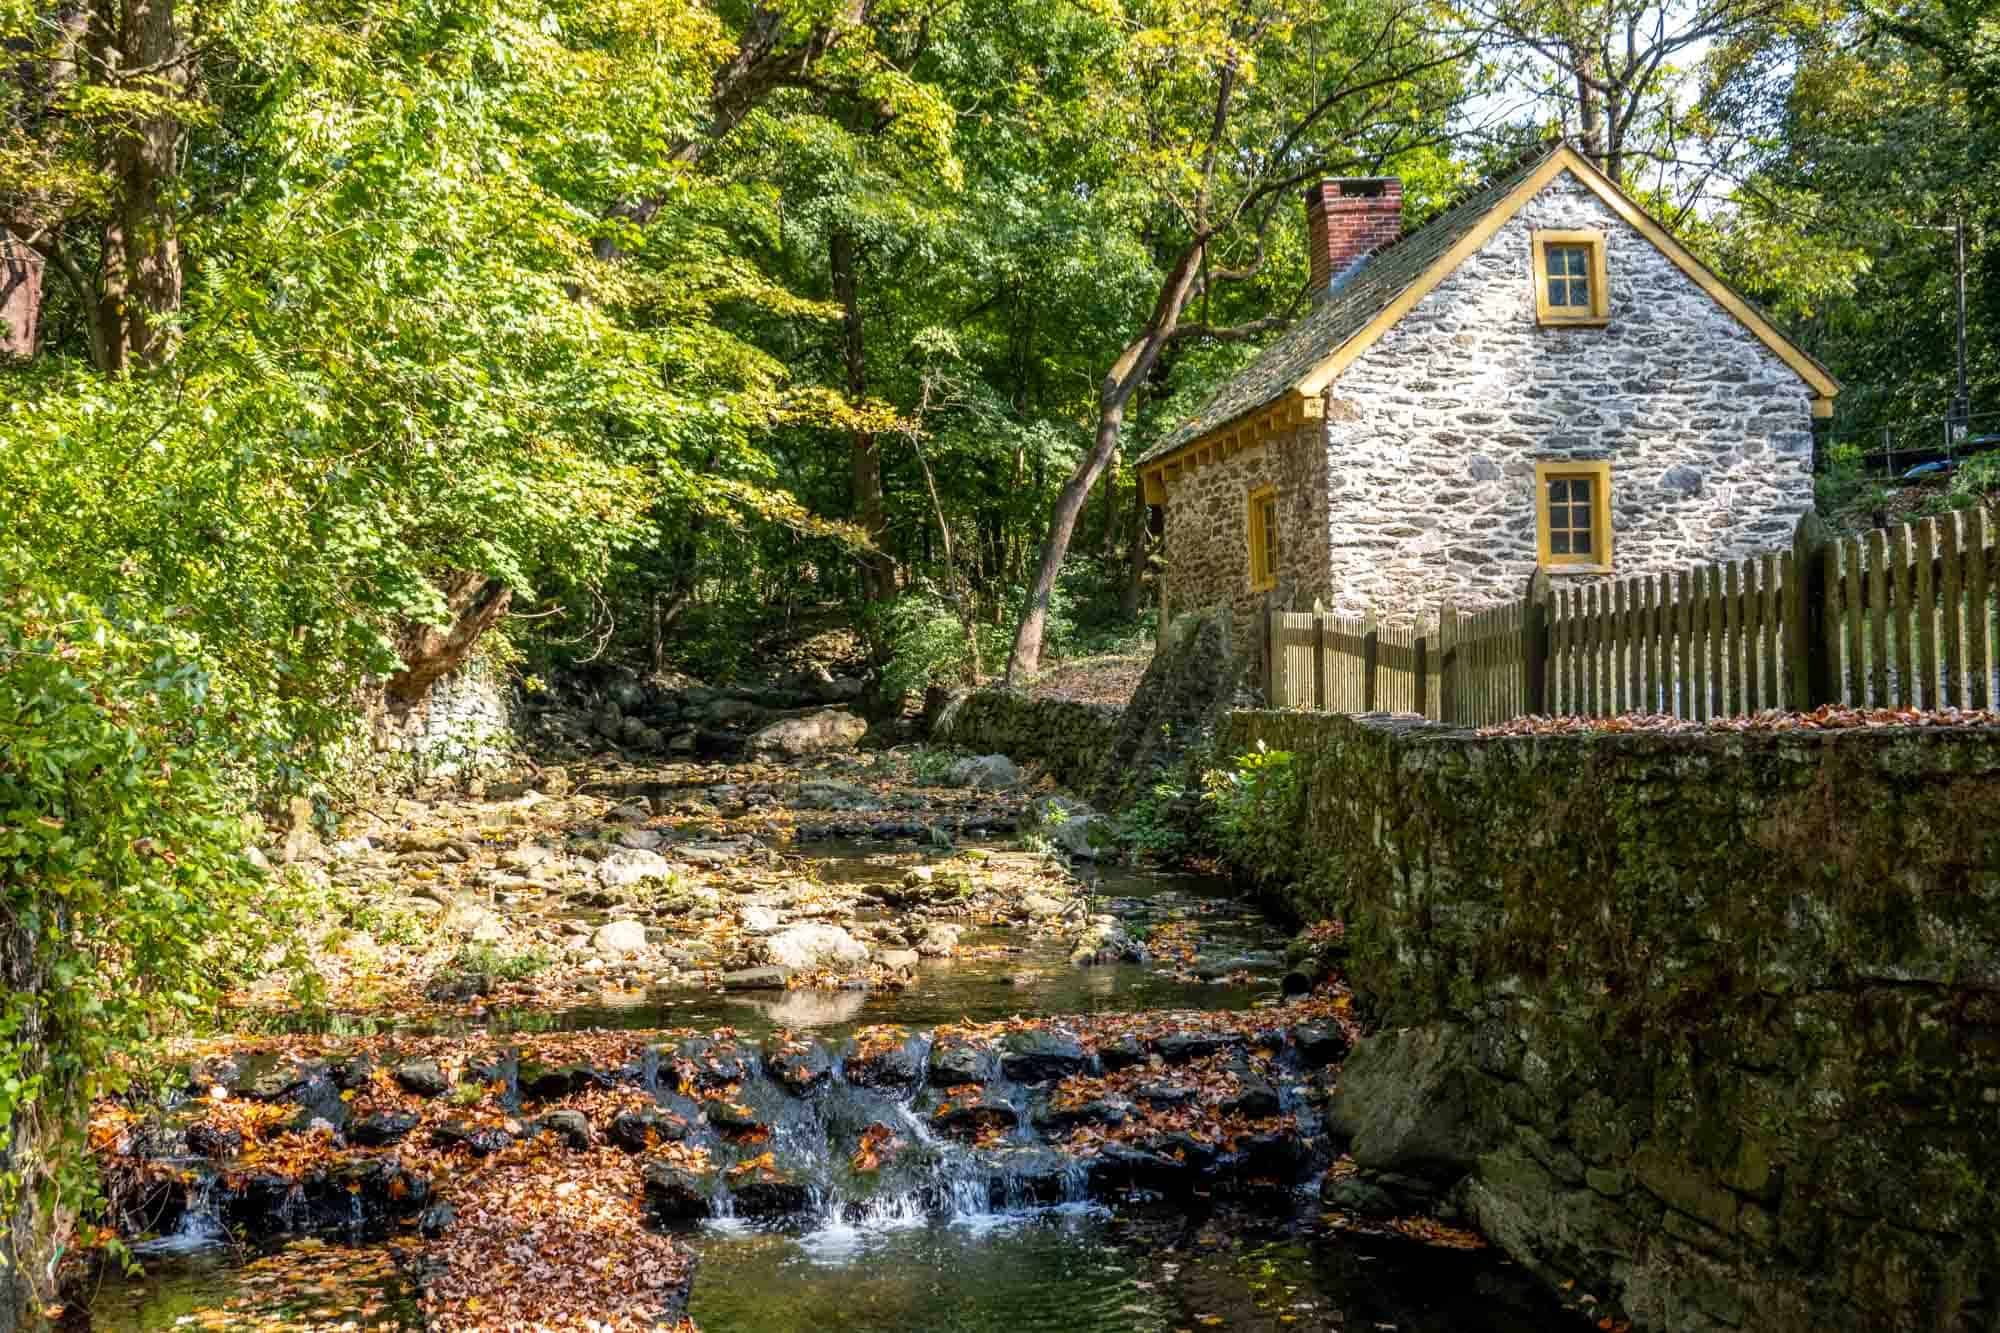 Stone building beside a small waterfall with fall leaves scatter4ed around